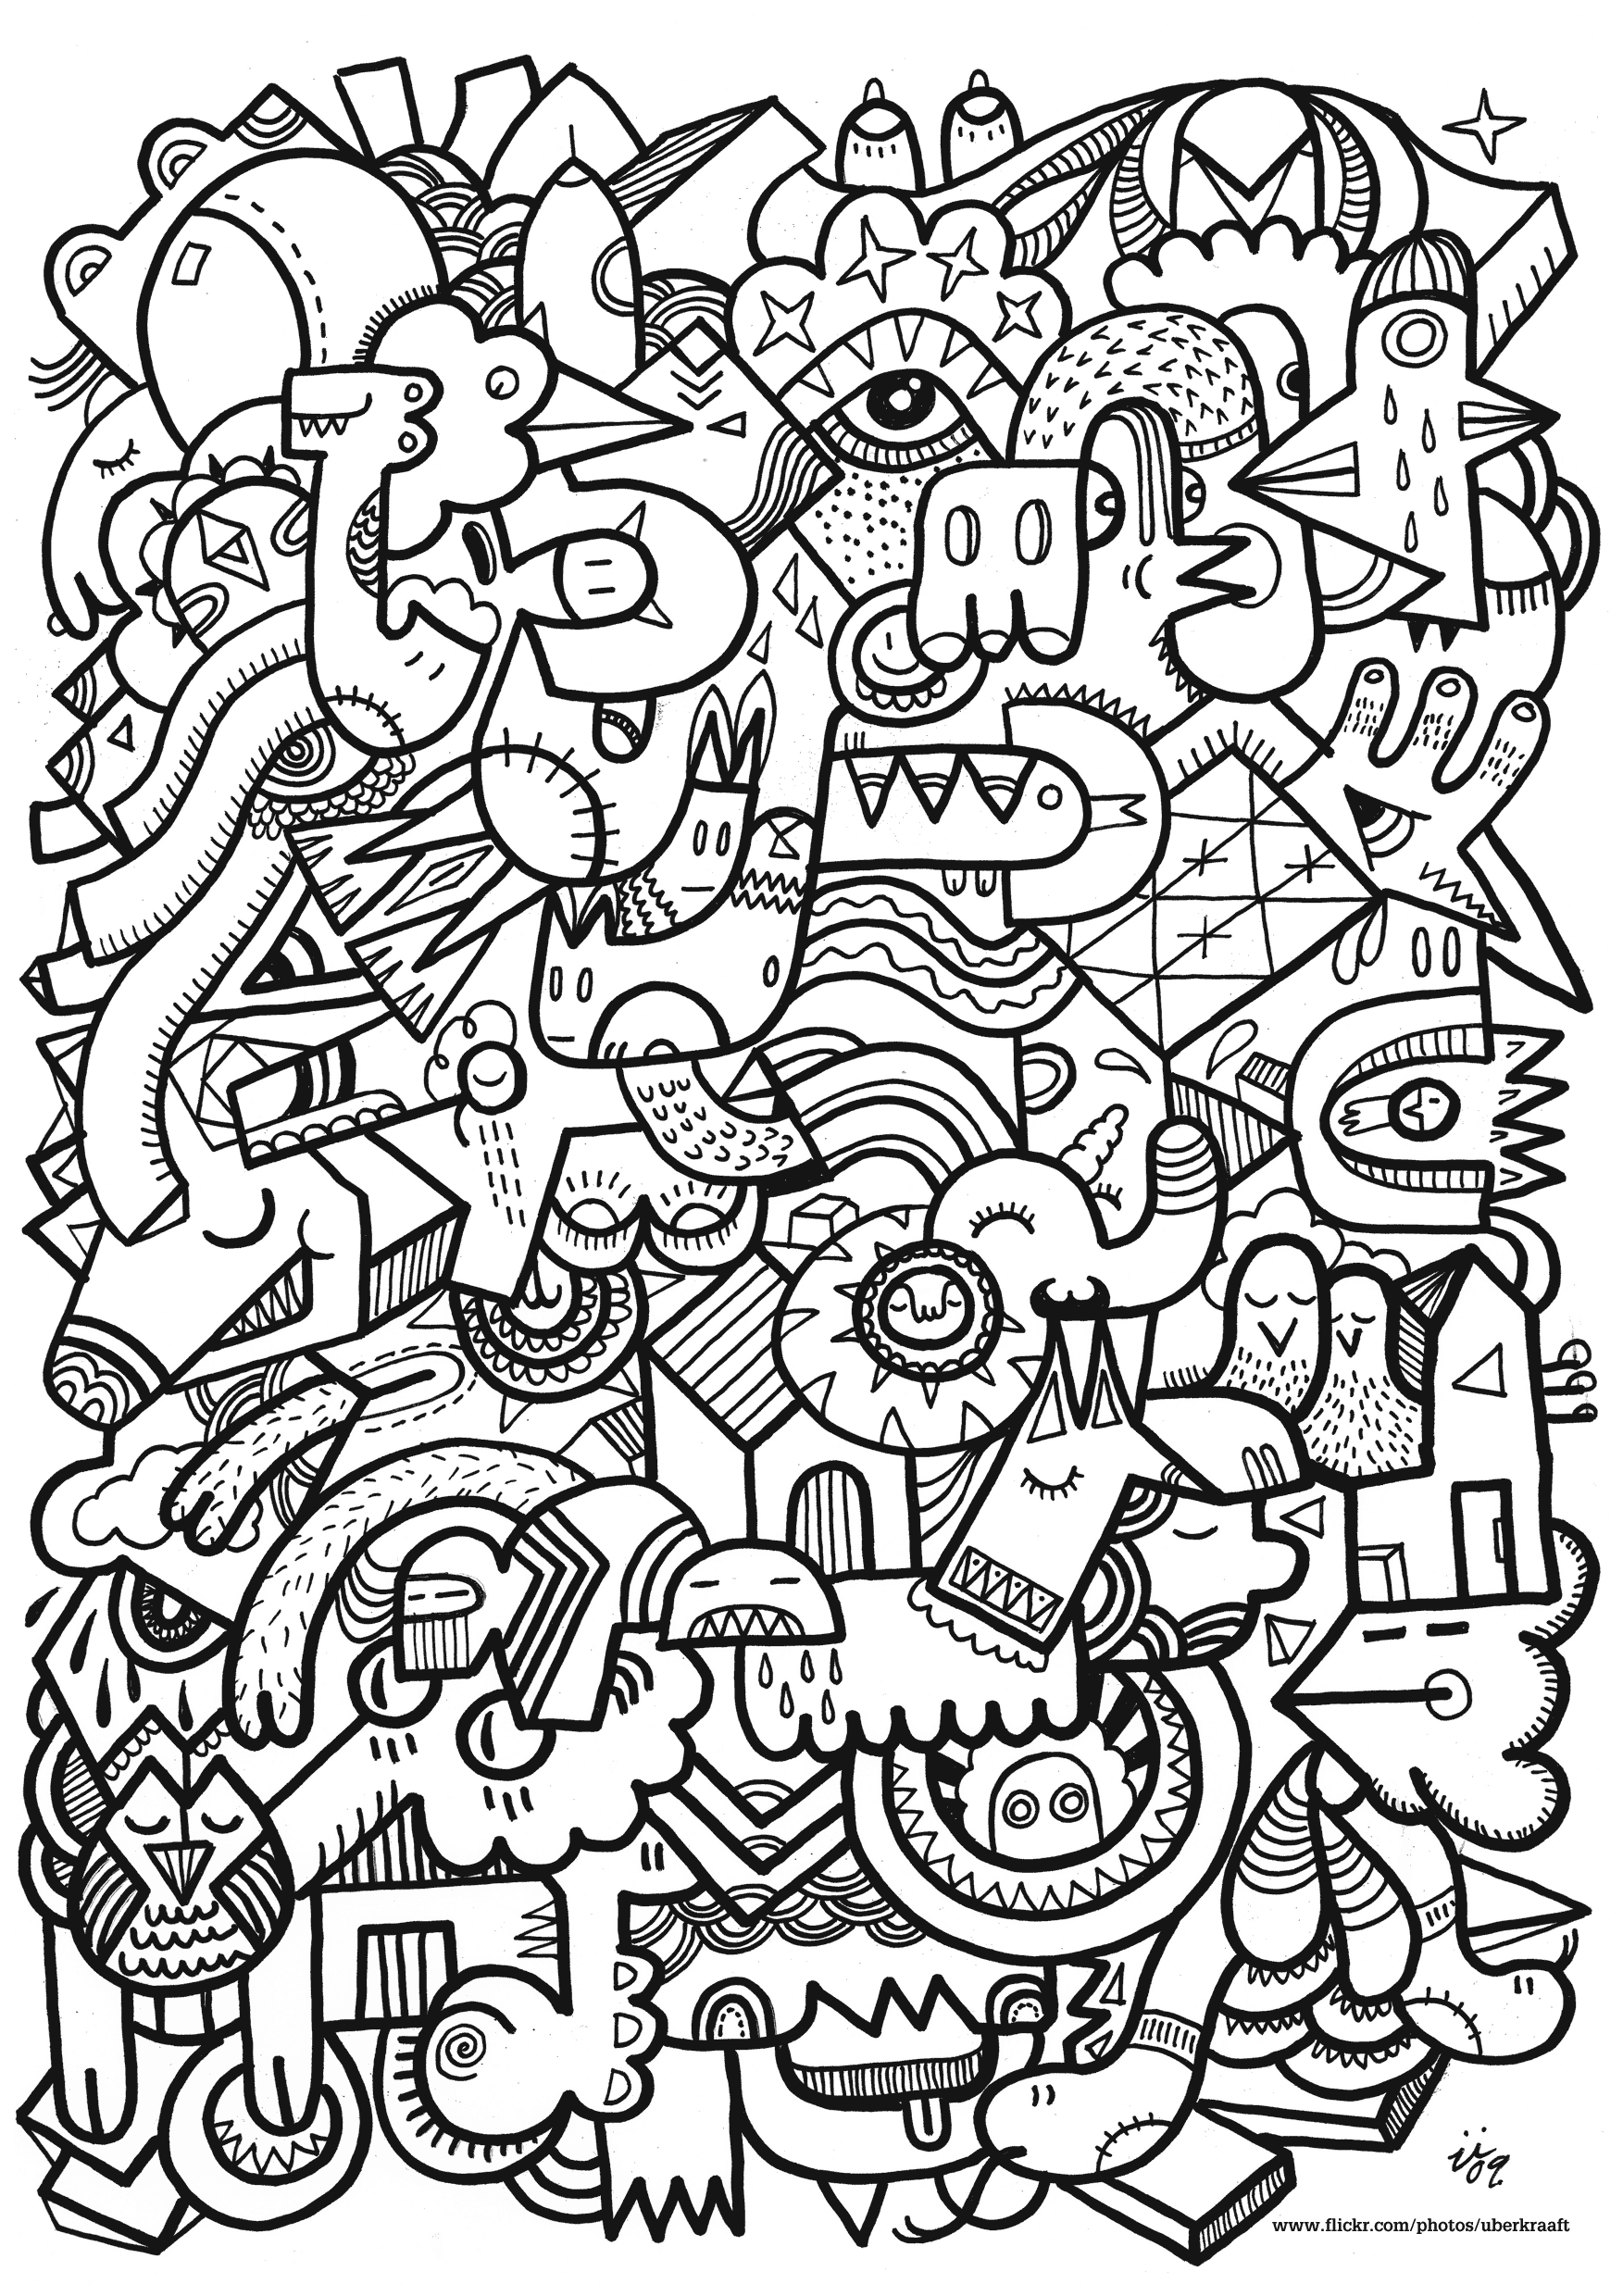 Free coloring pages for adults abstract - Pattern Coloring Pages For Adults Coloring Home